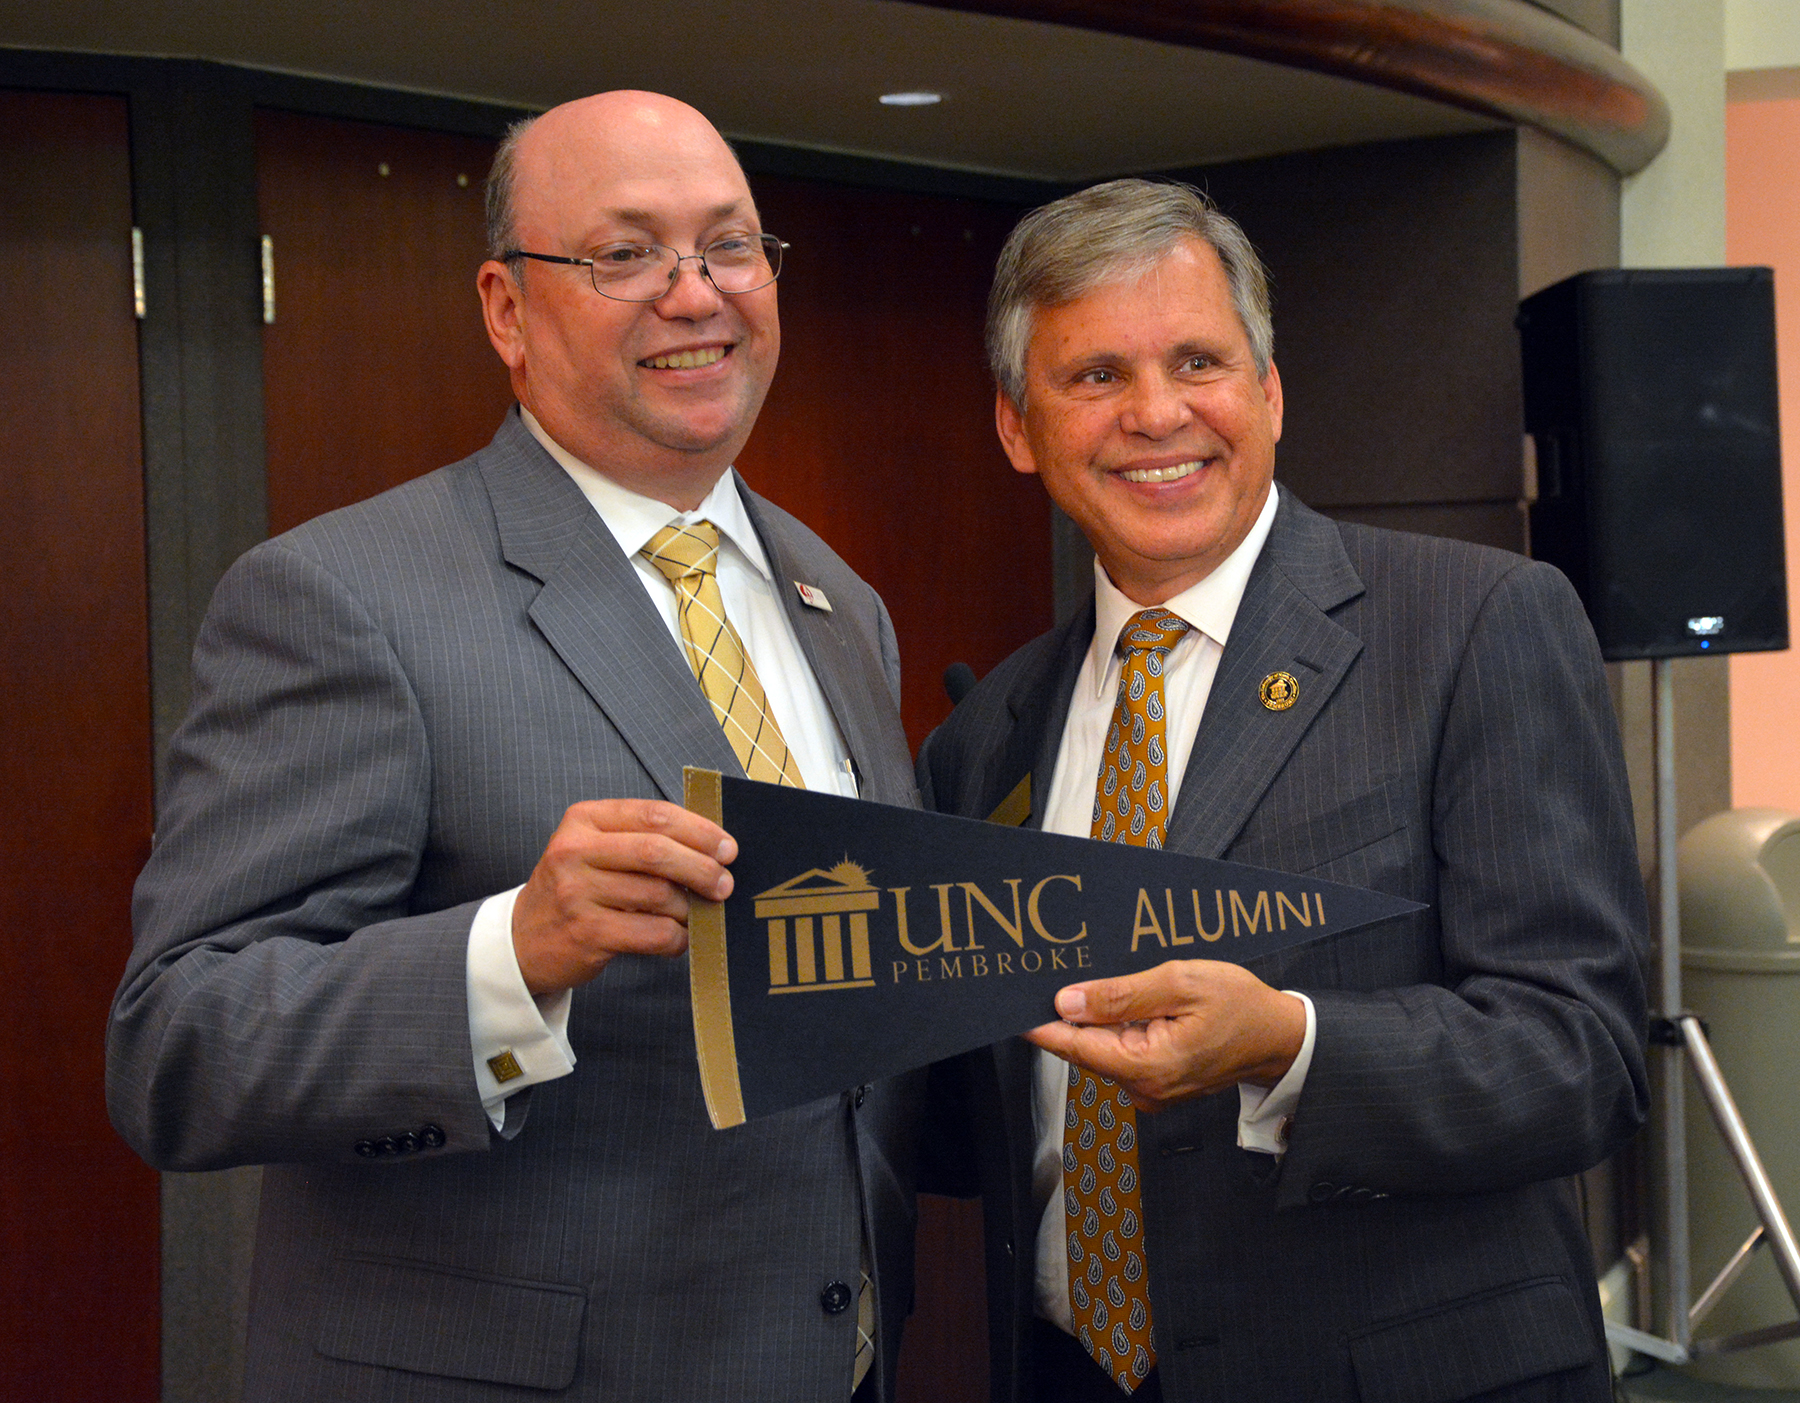 Pictured are Dr. Dale McInnis, president of Richmond Community College, and University of North Carolina at Pembroke Chancellor Robin Gary Cummings during a drop-in for Cummings when he was installed as the new chancellor. RichmondCC and UNCP have created a new teacher education program for a Bachelor of Science in Elementary Education